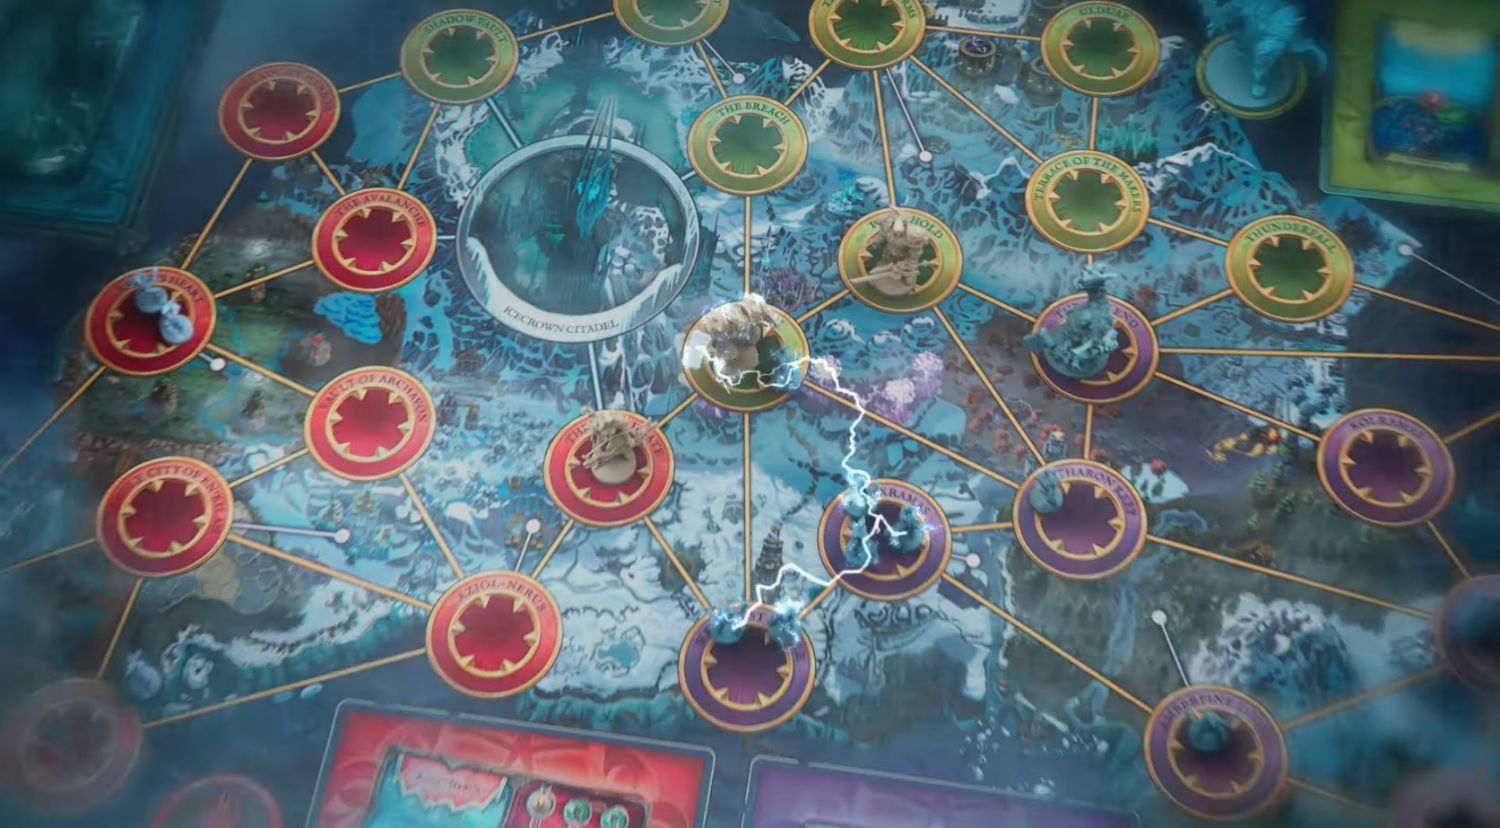 A potential look at the game board of the Wrath of the Lich King and Pandemic crossover.